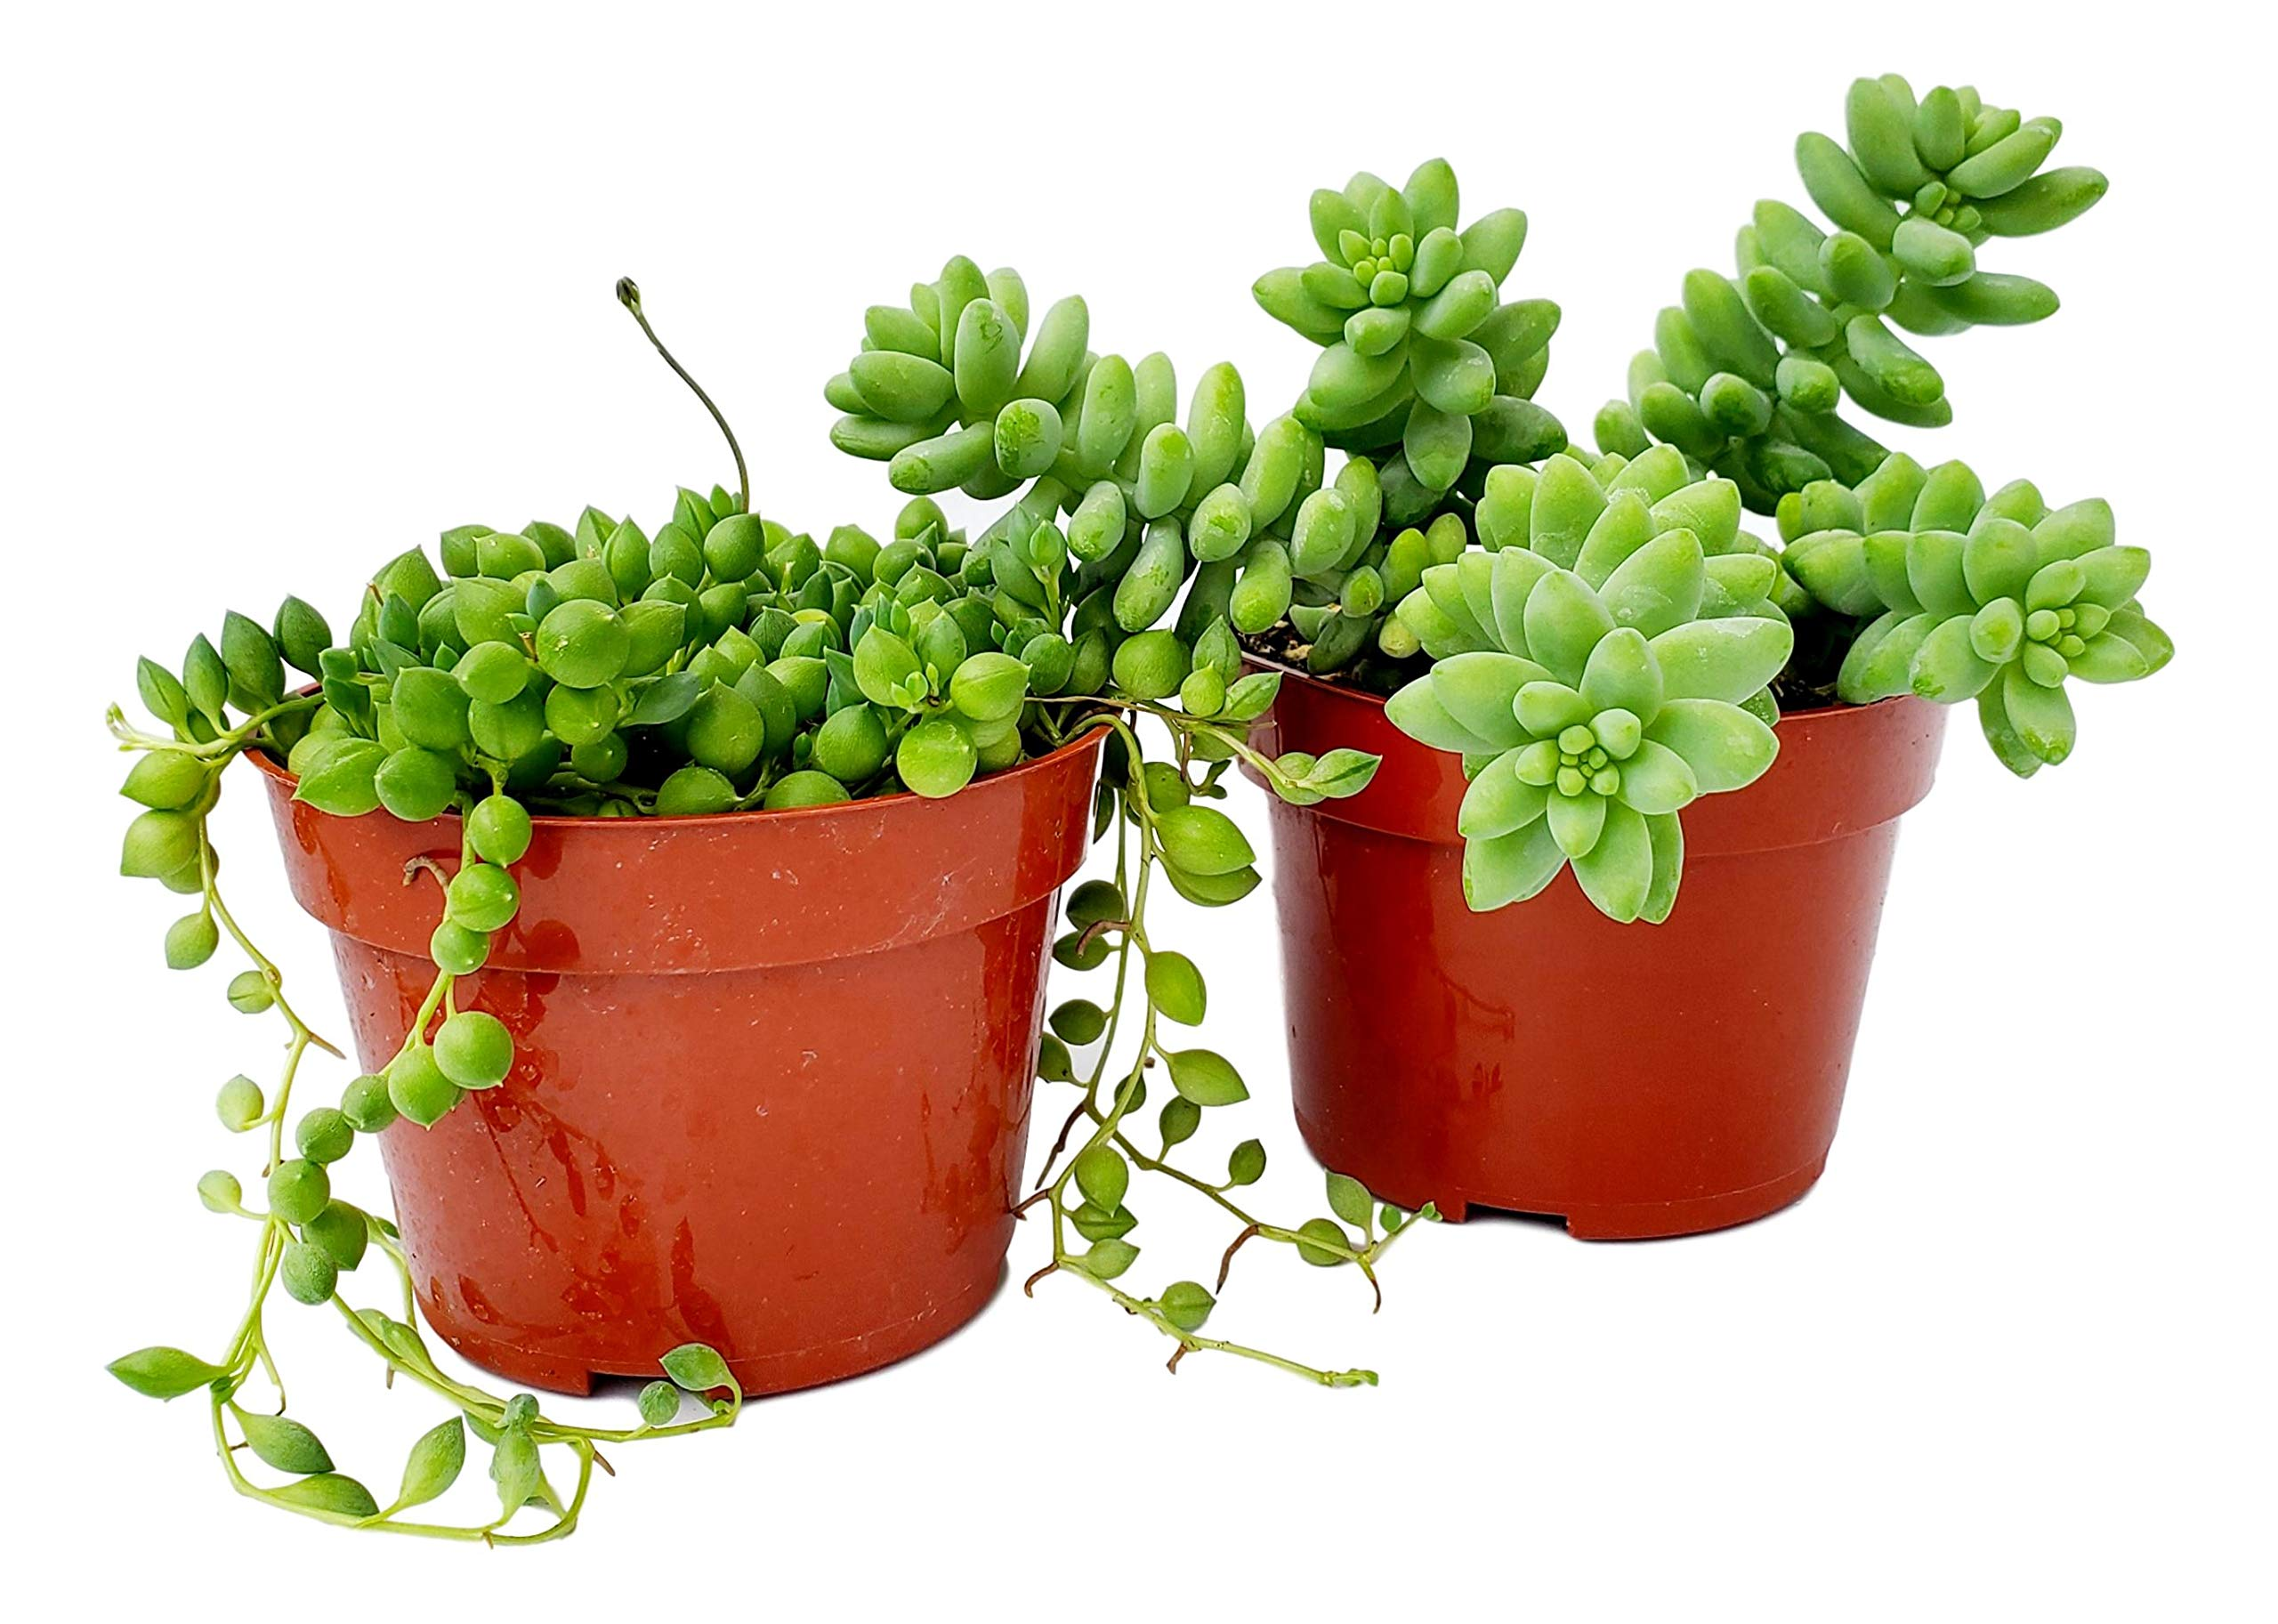 Fat Plants San Diego Succulent Plant(s) Fully Rooted in 4 inch Planter Pots with Soil - Real Live Potted Succulents/Unique Indoor Cactus Decor (2, String of Pearls and Sedum Burrito Combo) by Fat Plants San Diego